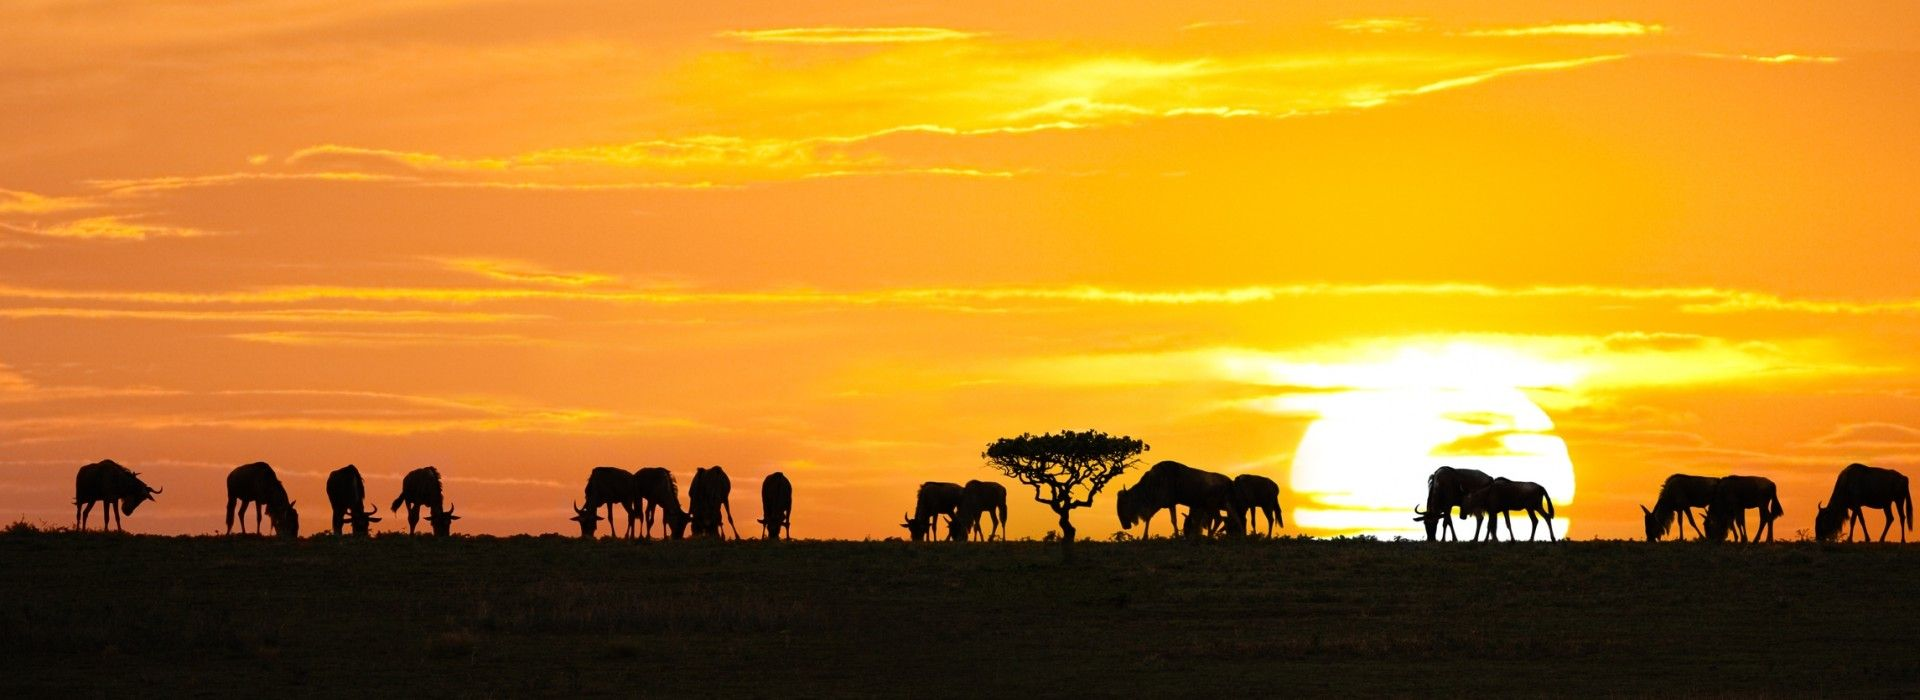 Sightseeing, attractions, culture and history Tours in Tanzania